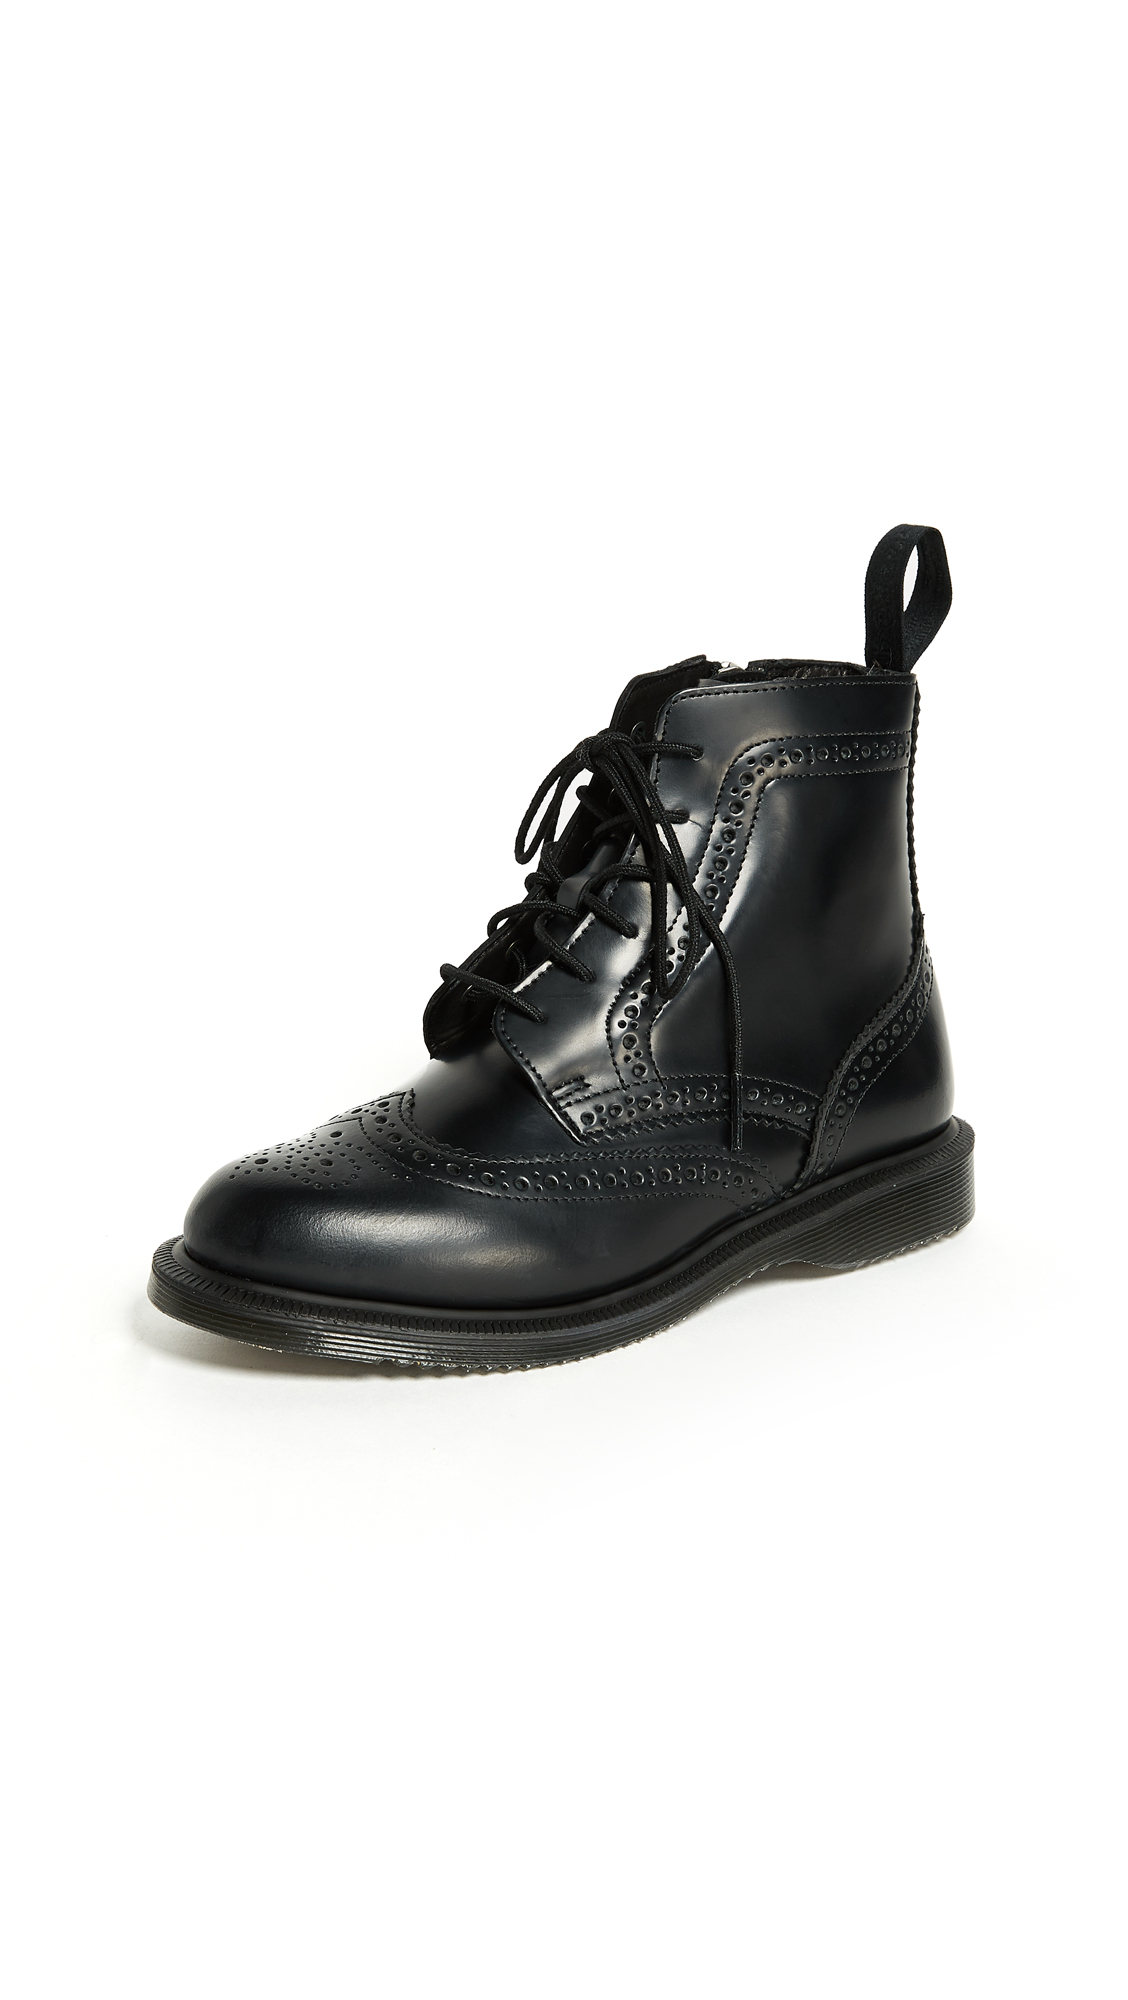 Dr. Martens Delphine 8 Eye Brogue Boots - Black